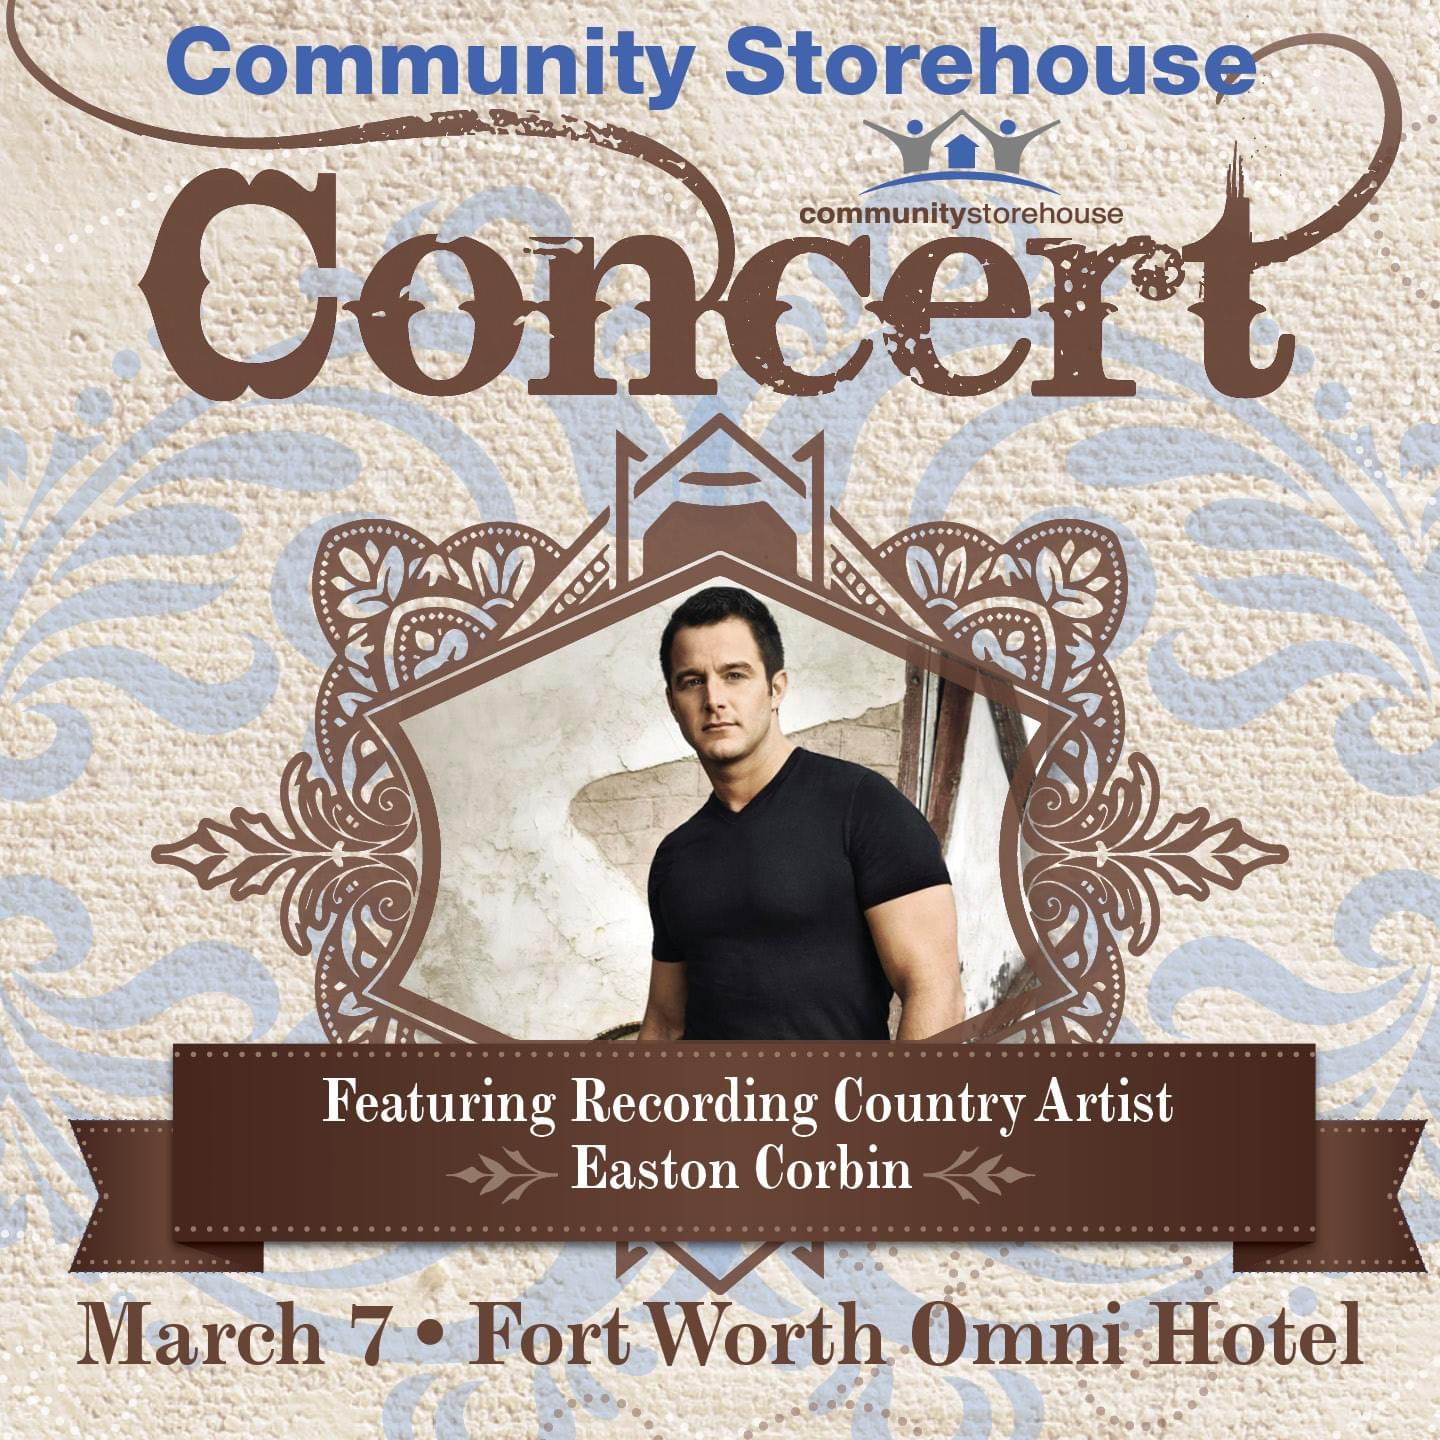 Win a Tickets to Easton Corbin benefitting Community Storehouse!